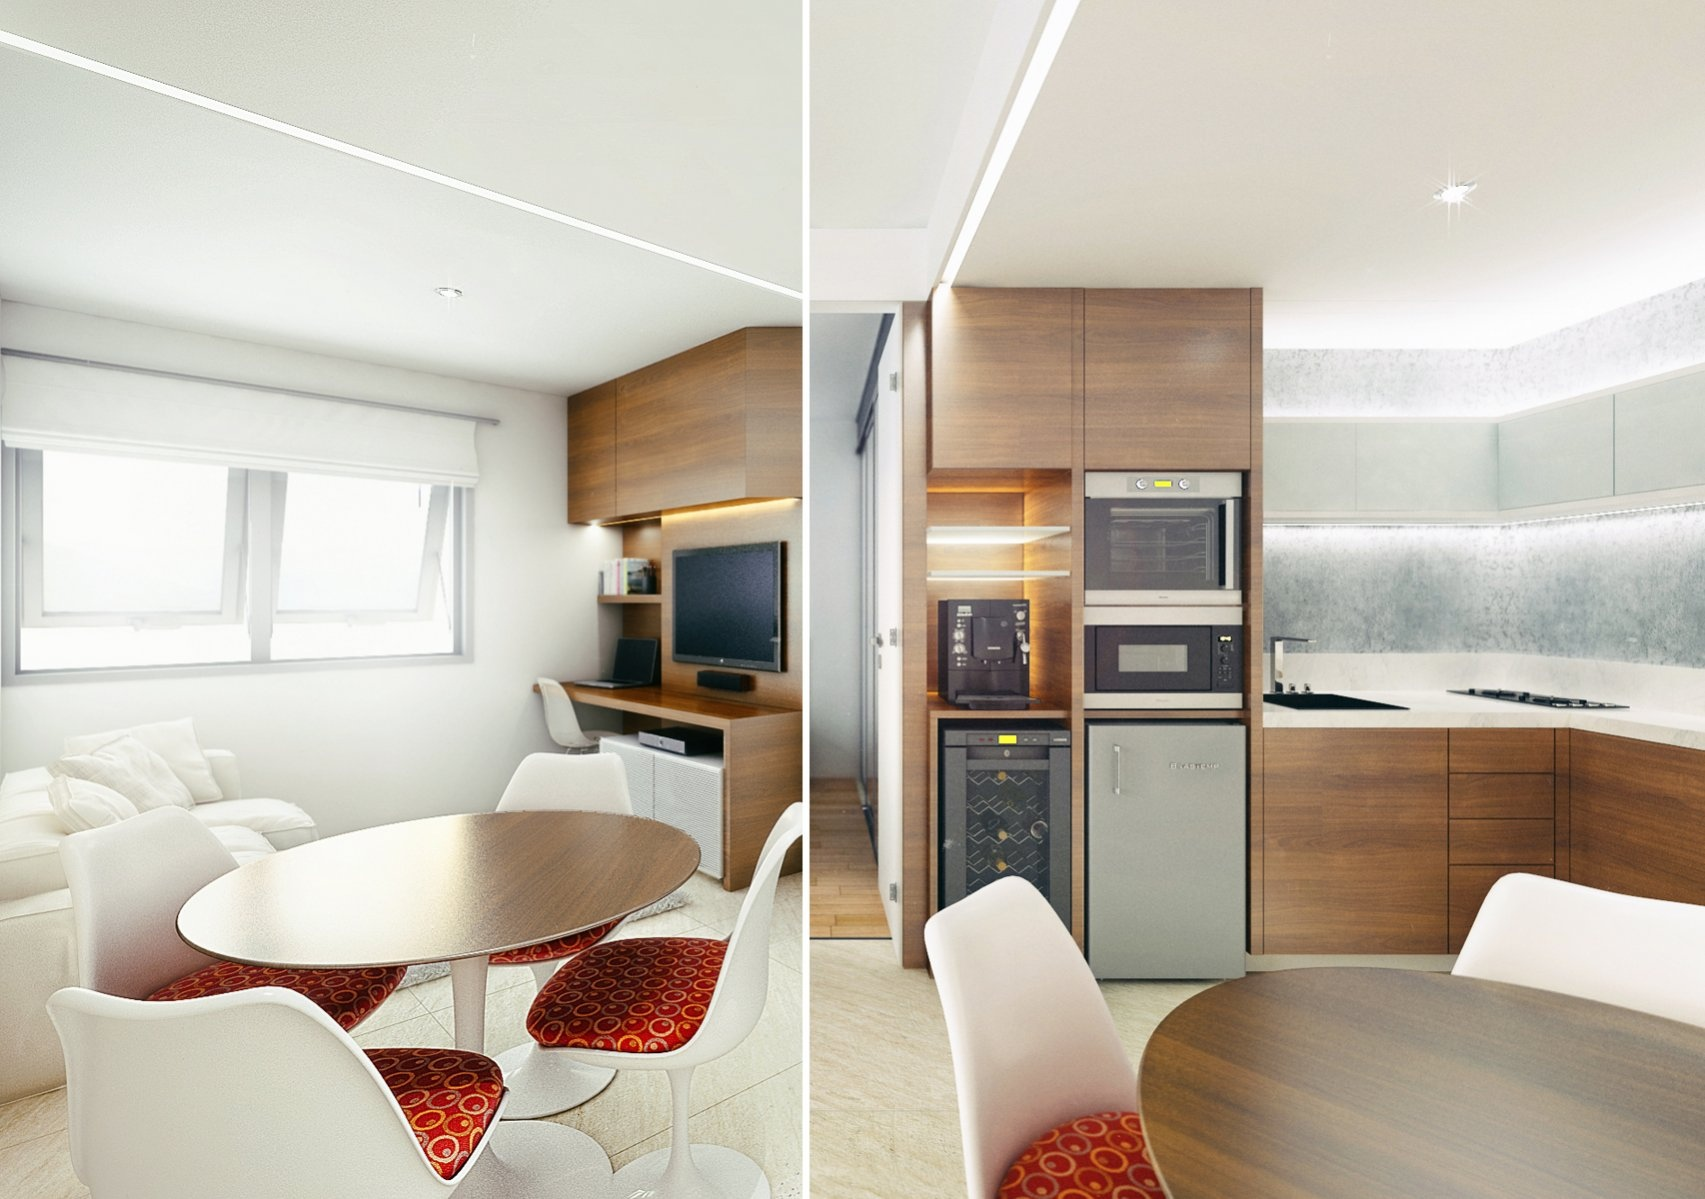 ll look at this quaint modern apartment from the designers at fpcamp